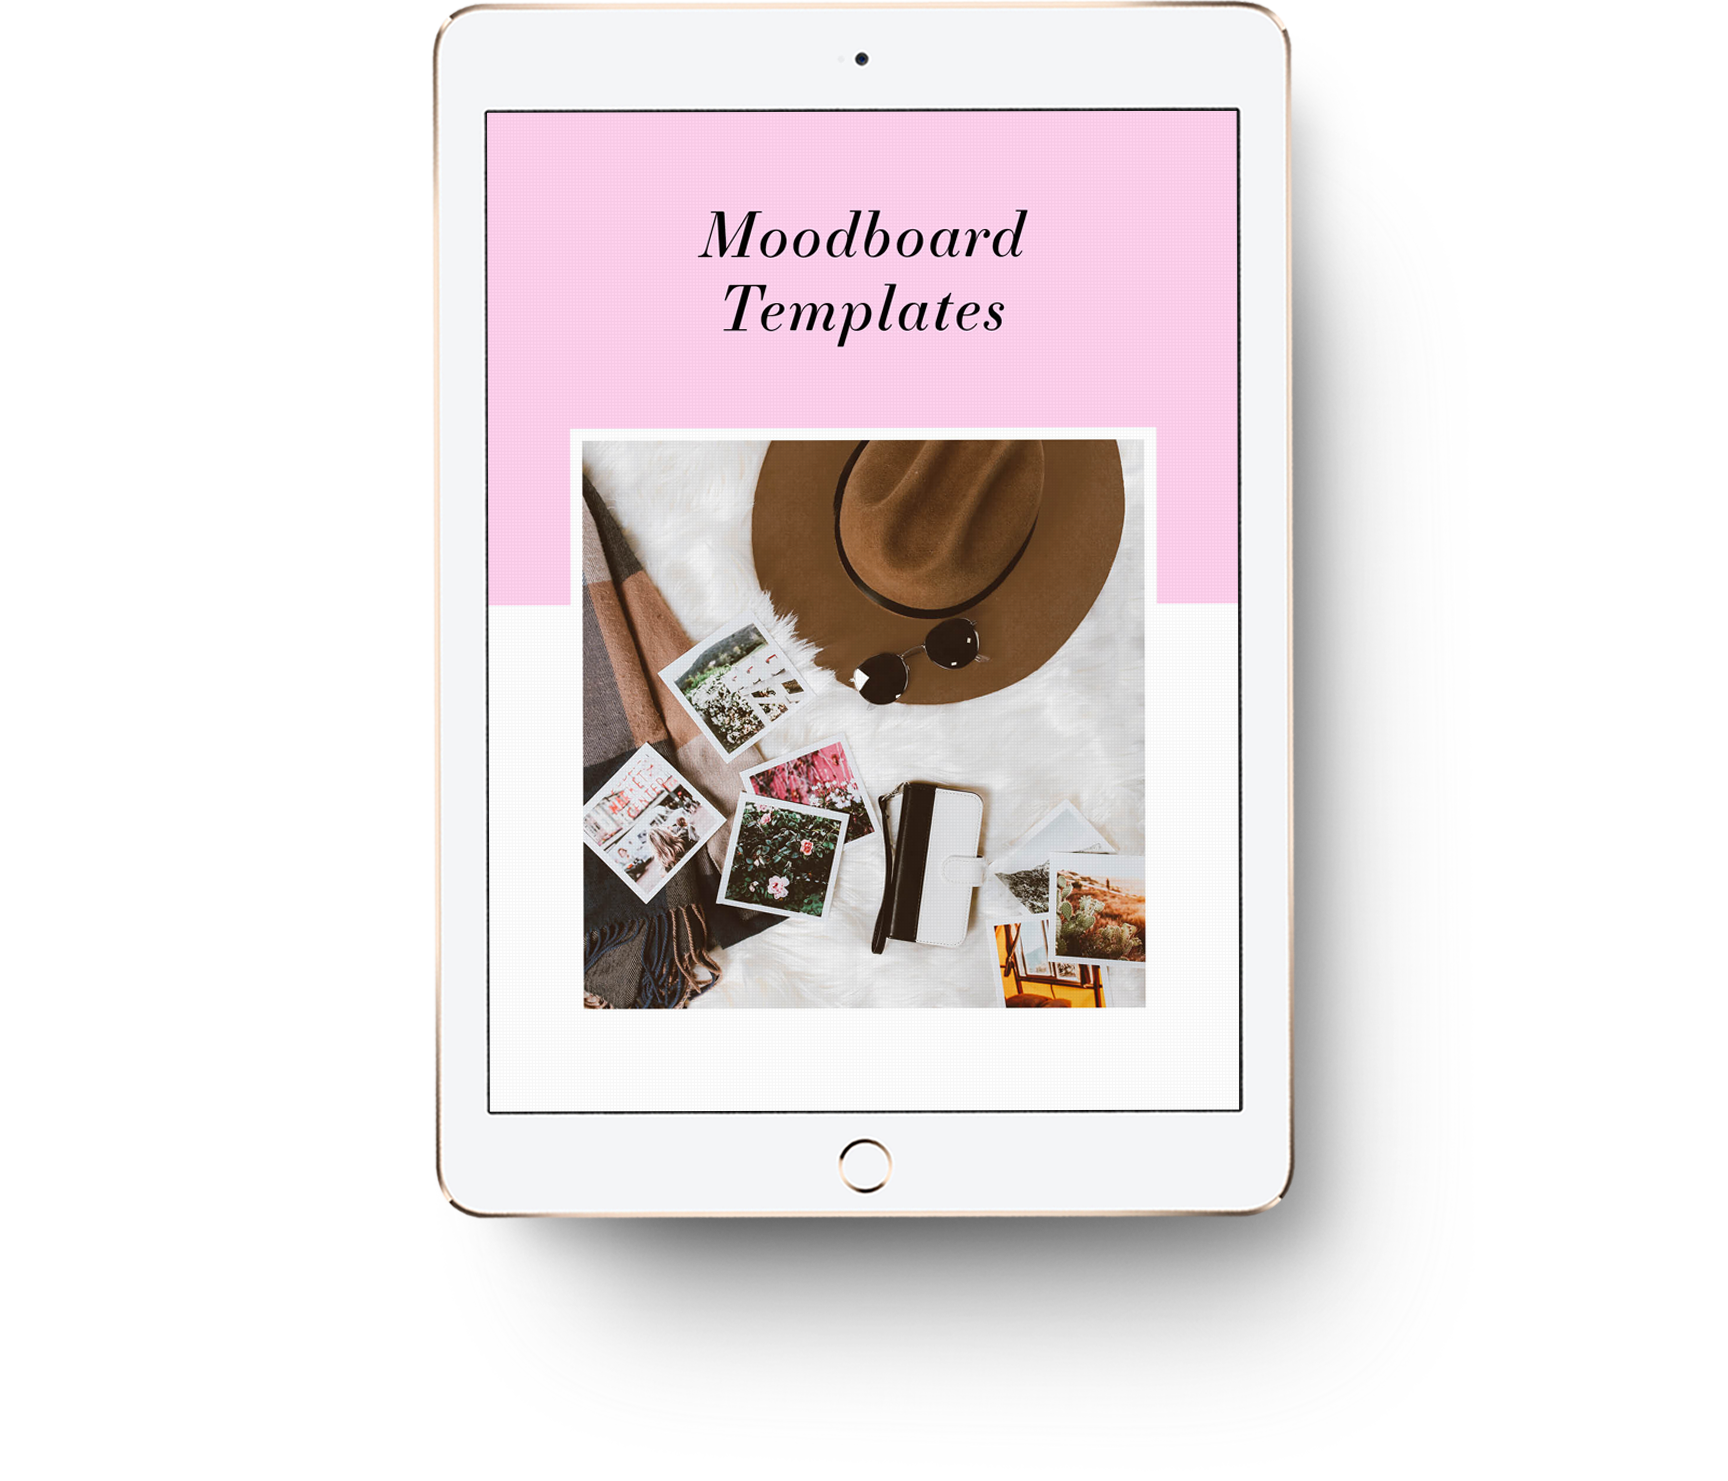 Free moodboard templates for InDesign, Photoshop and Canva